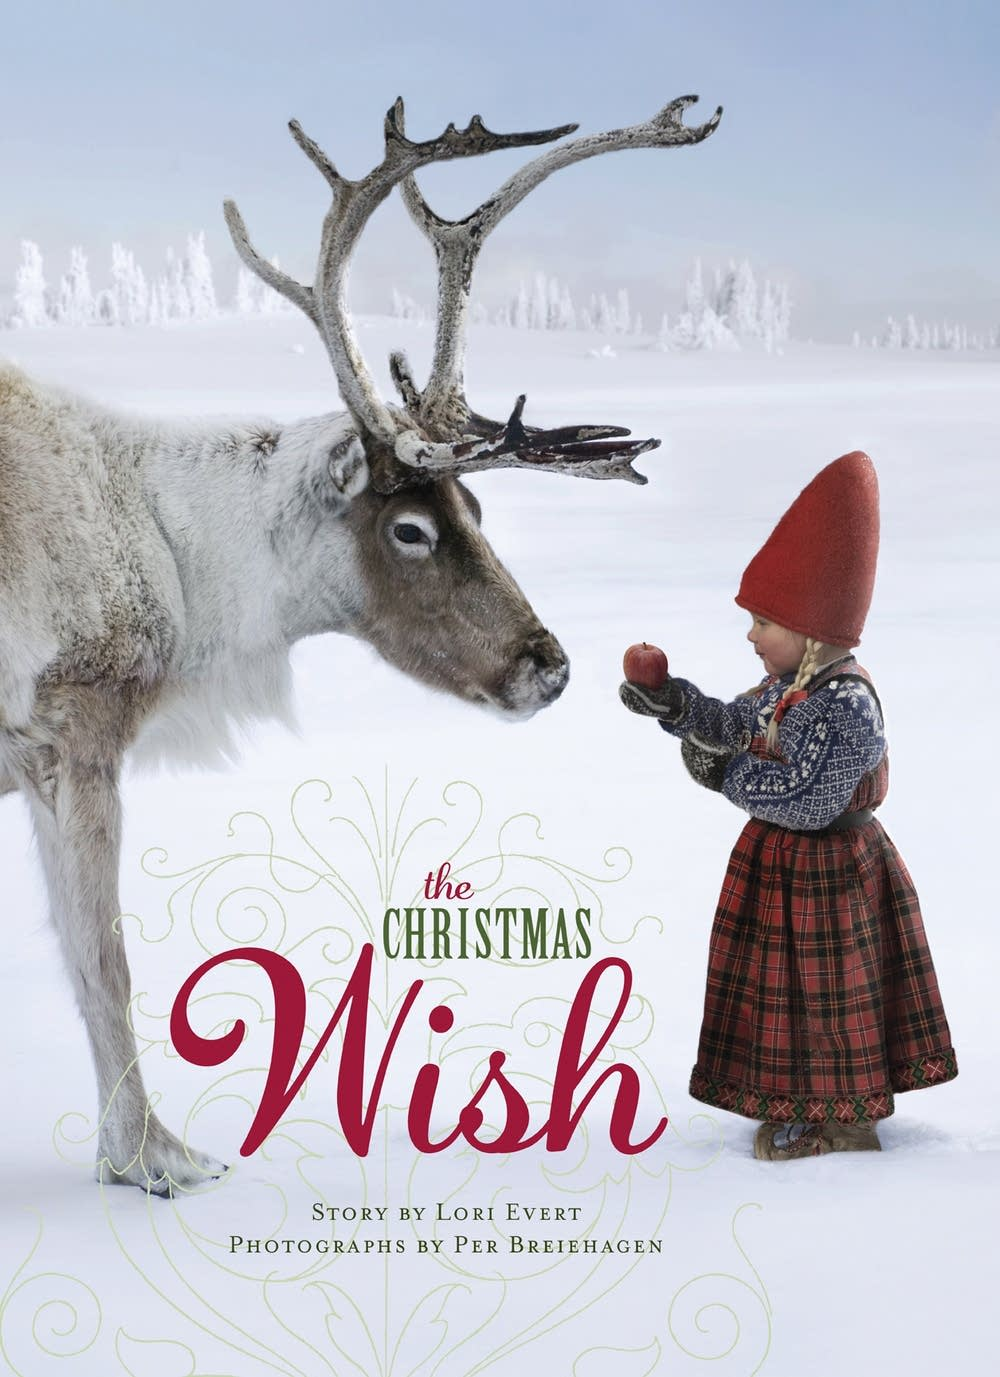 'The Christmas Wish'